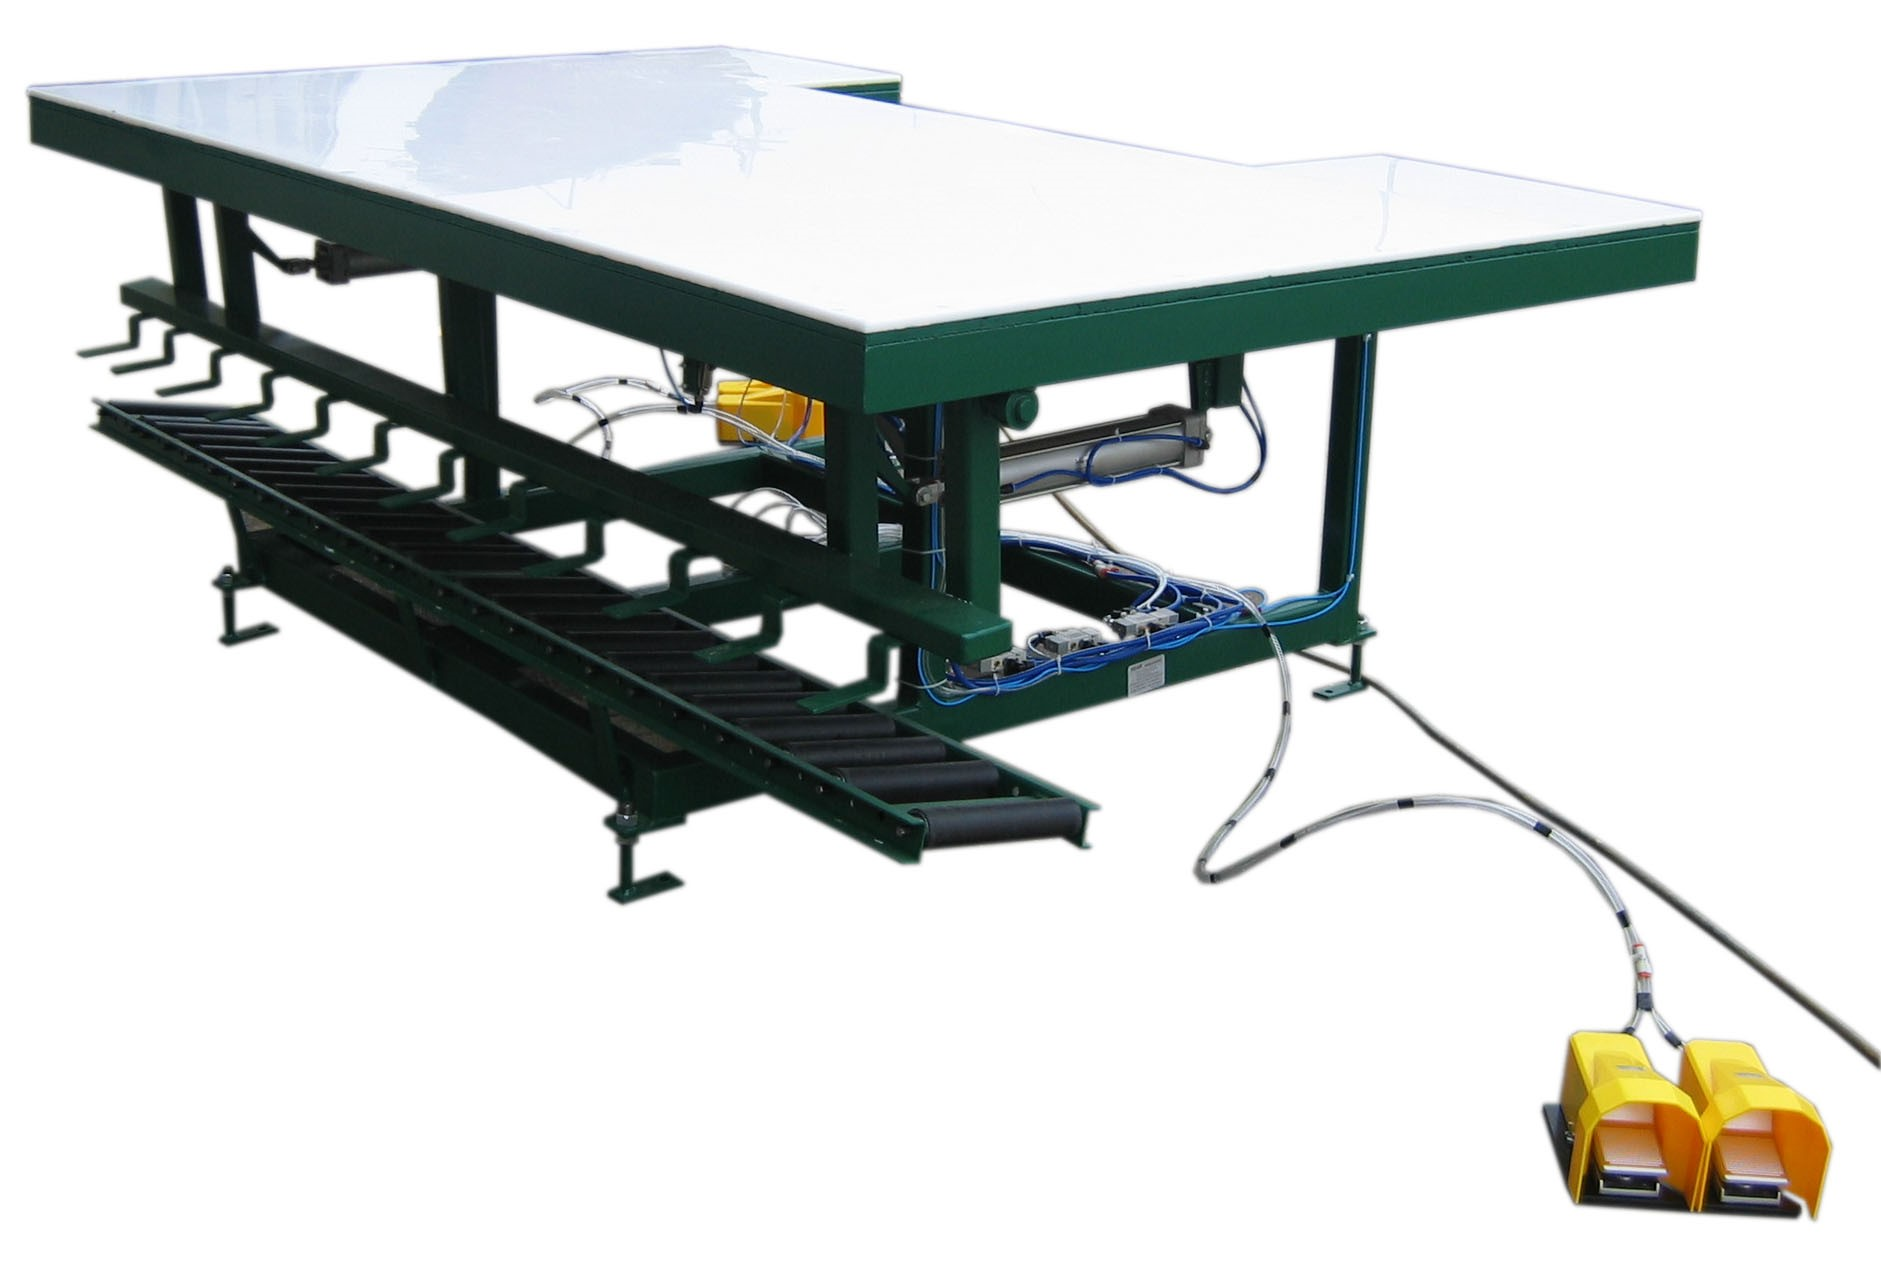 Solid HDPE Top